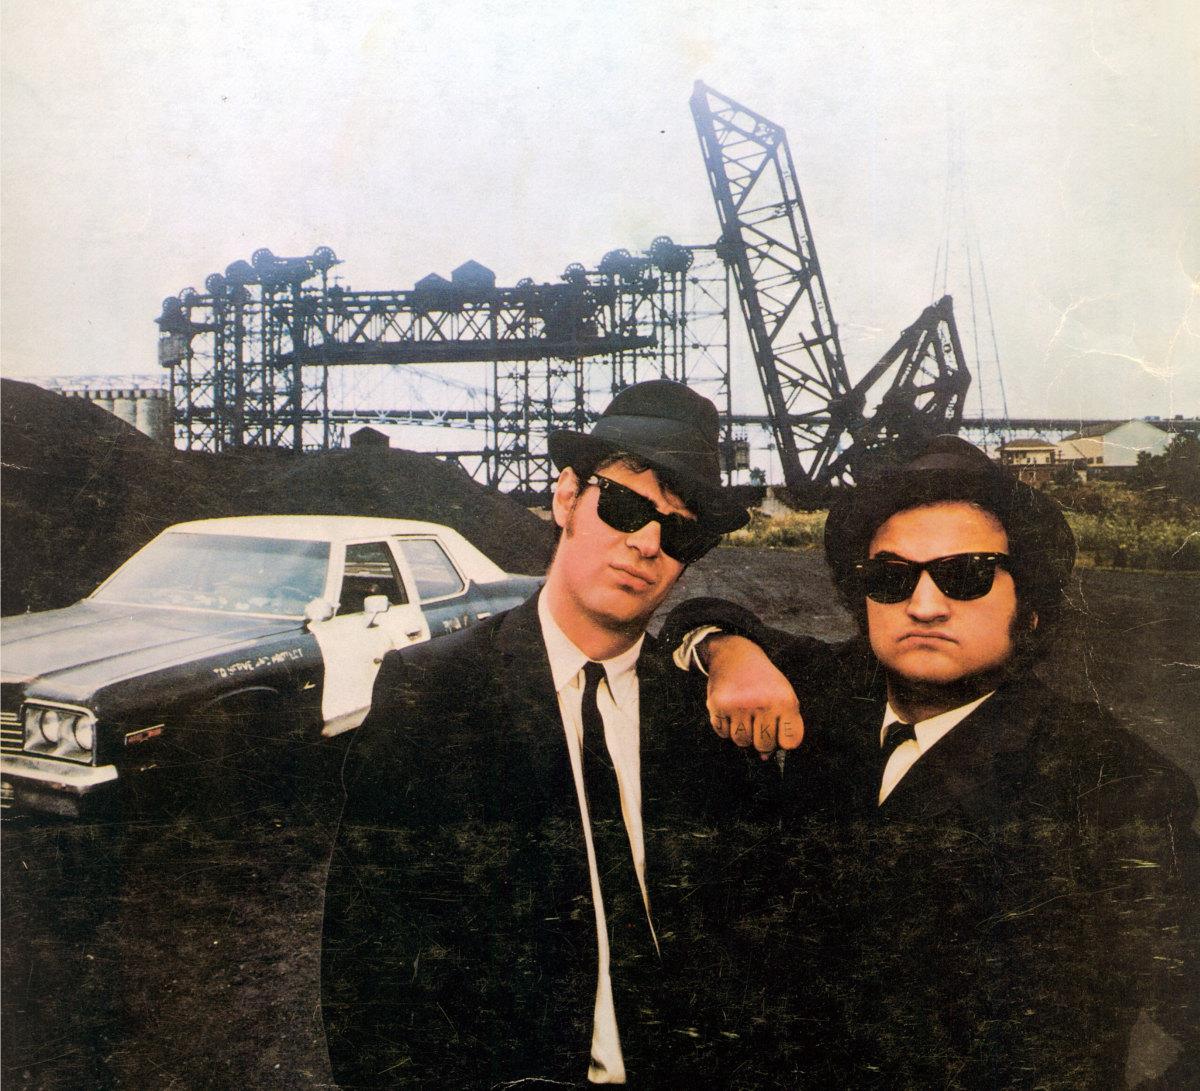 The blues brothers king bees and rubber biscuits biography blues brothers 1980 movie photo malvernweather Image collections